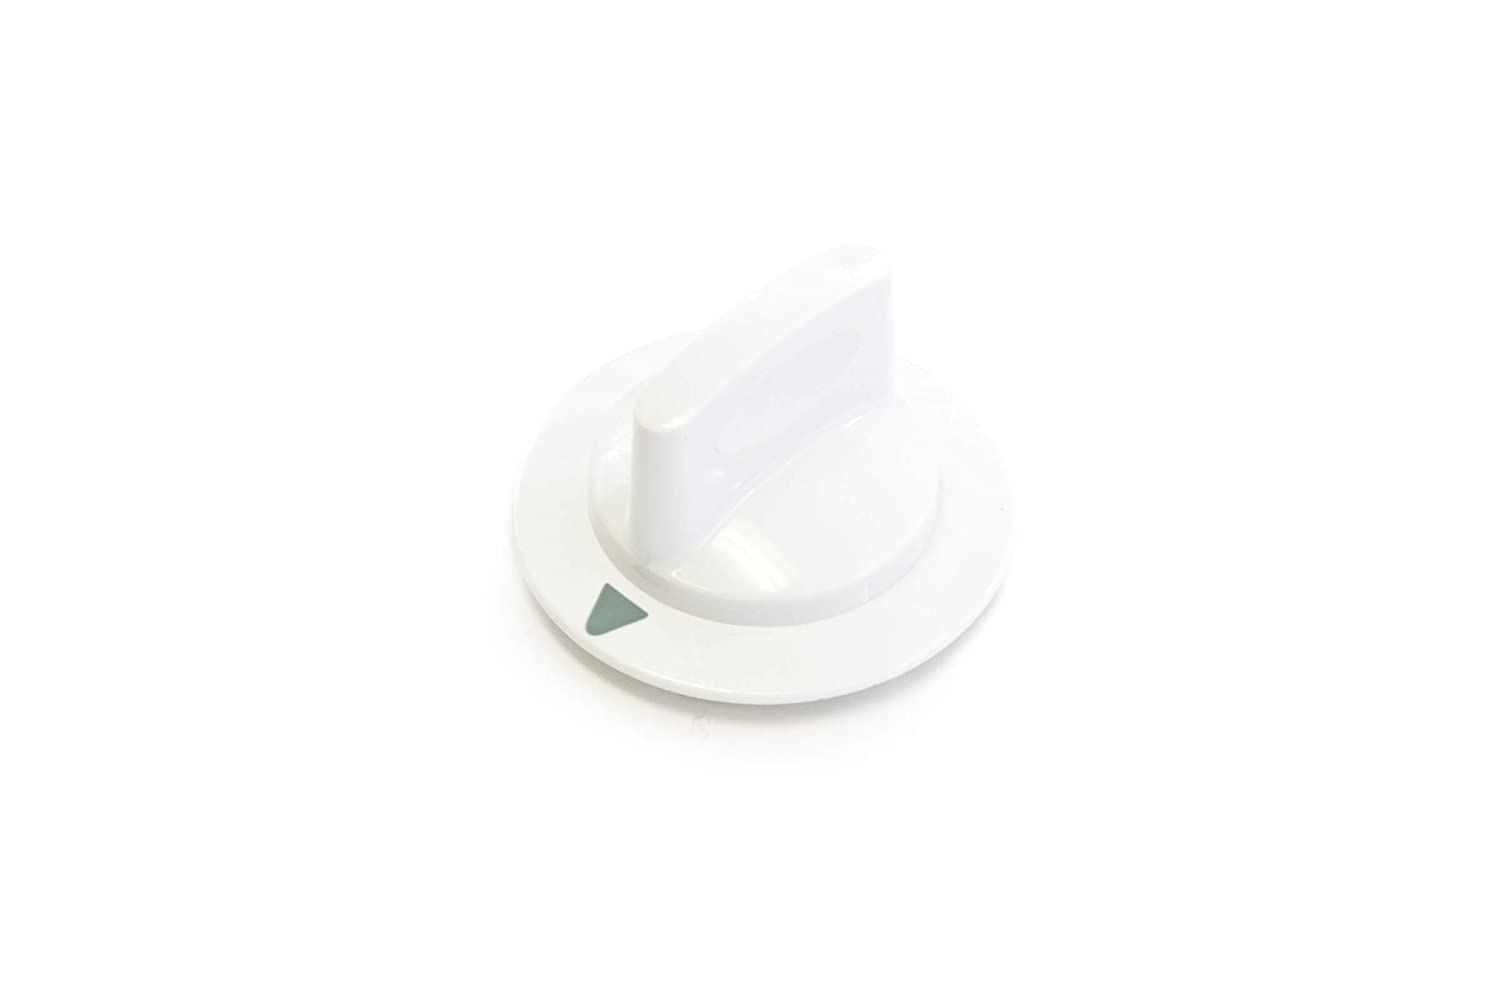 Red Hound Auto 1 White Dryer Timer Control Knob Replacement Compatible with General Electric Hotpoint RCA WE1M652